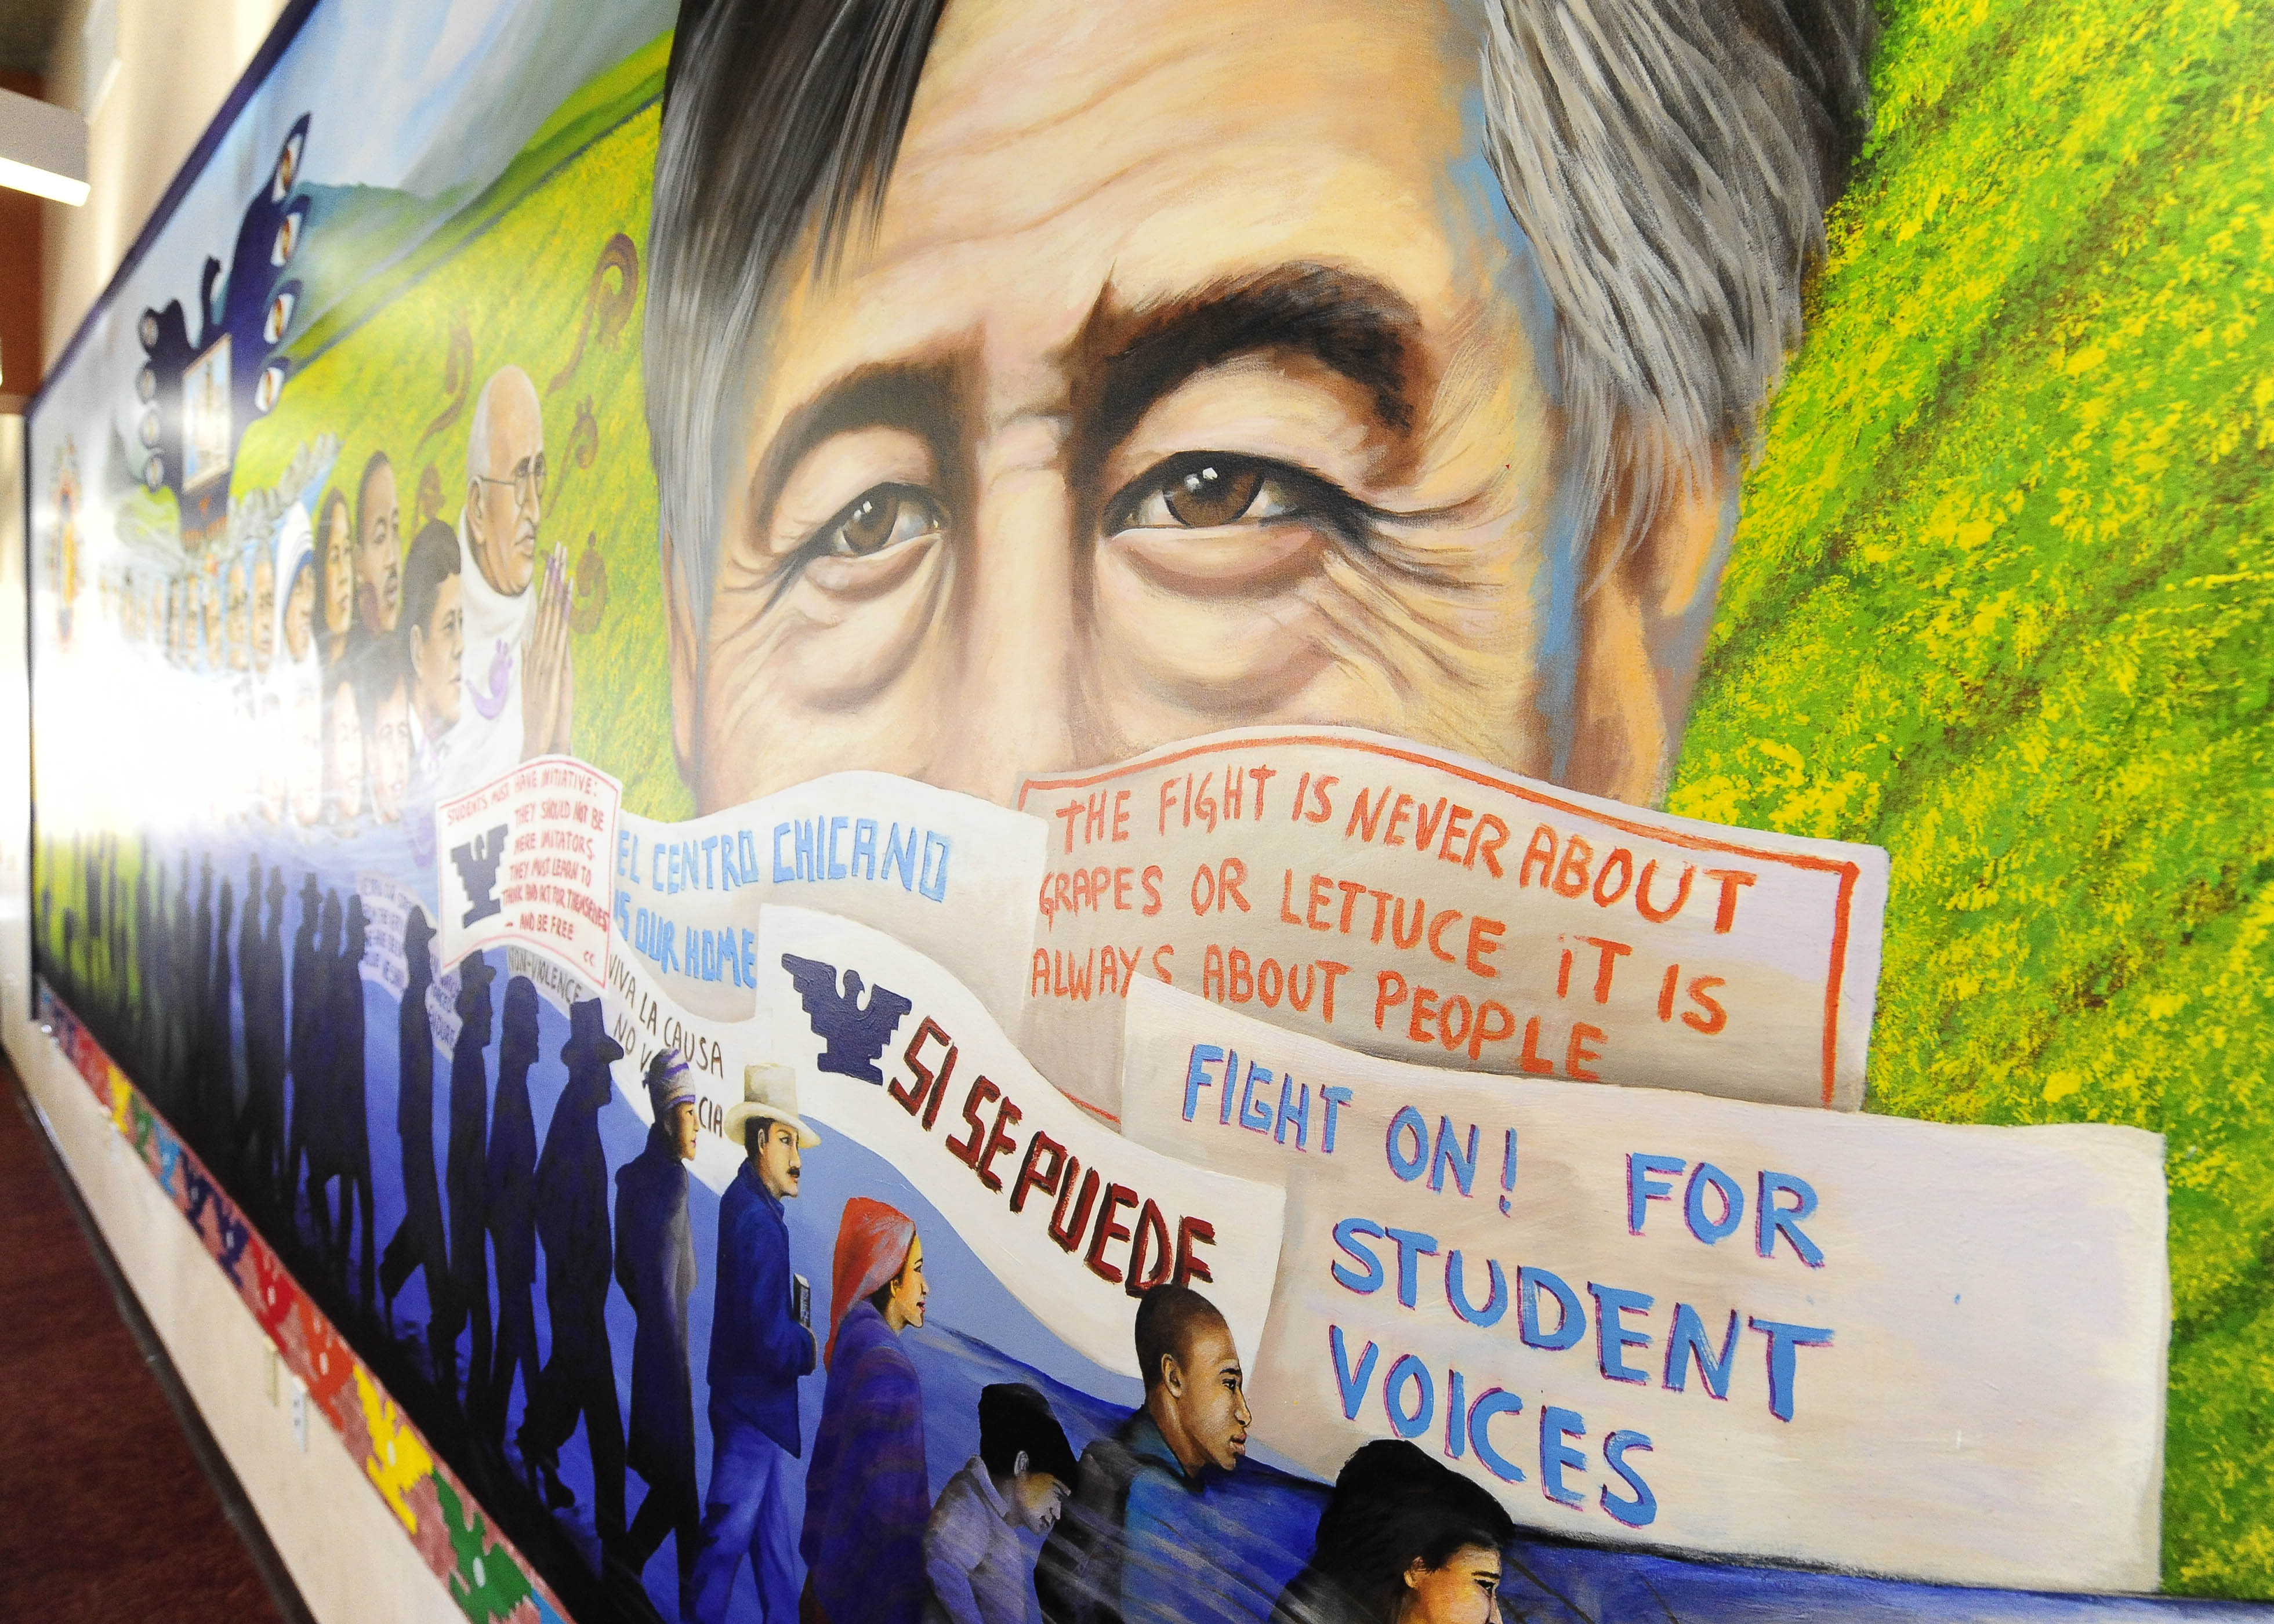 Cesar chavez film hosted by el centro on march 28 usc for Cesar chavez mural